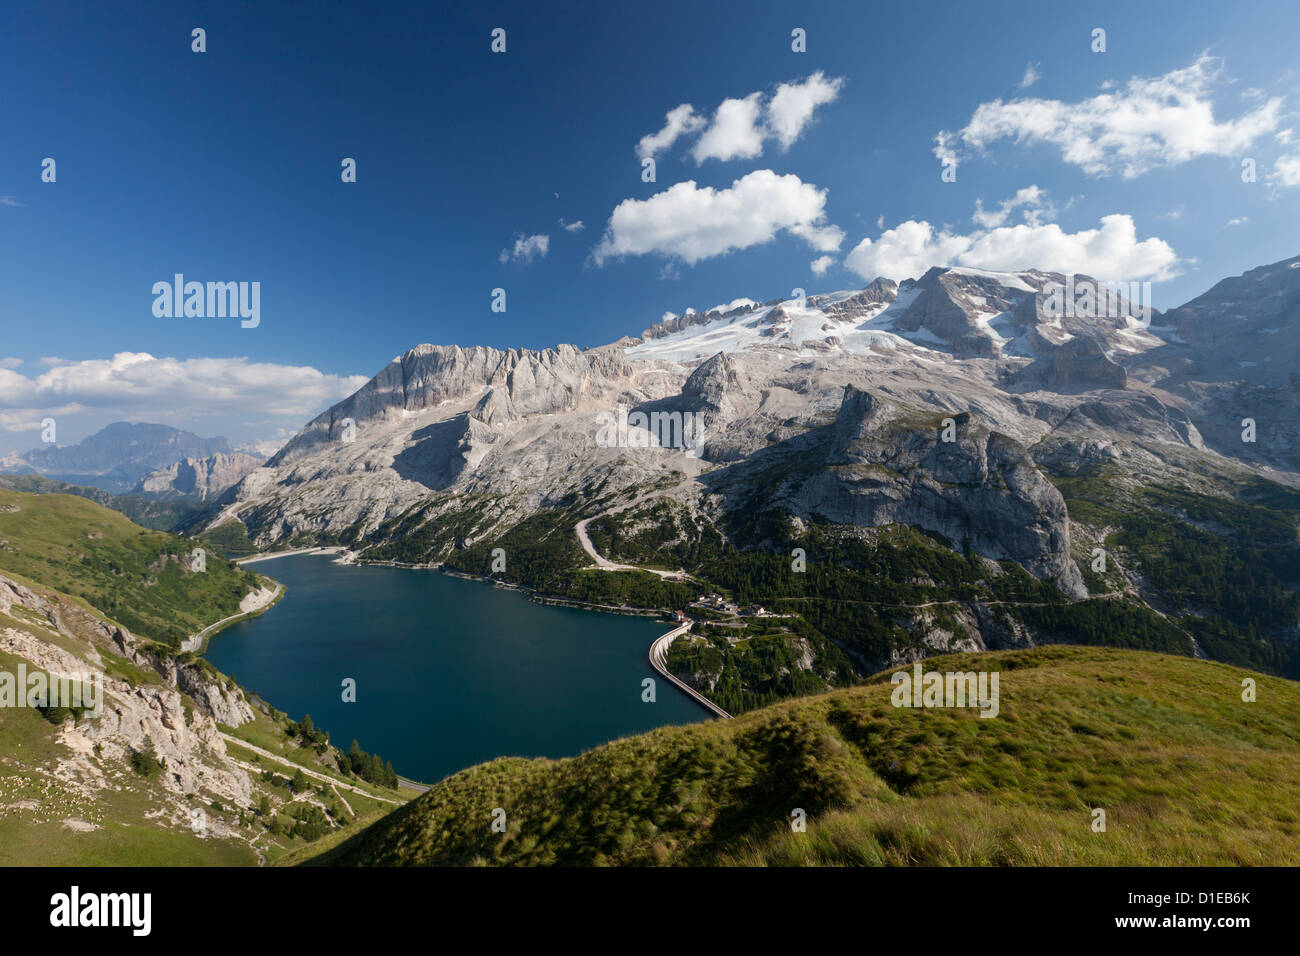 Hiking on the high route 2 in the Dolomites, Bolzano Province, Trentino-Alto Adige/South Tyrol, Italy, Europe - Stock Image